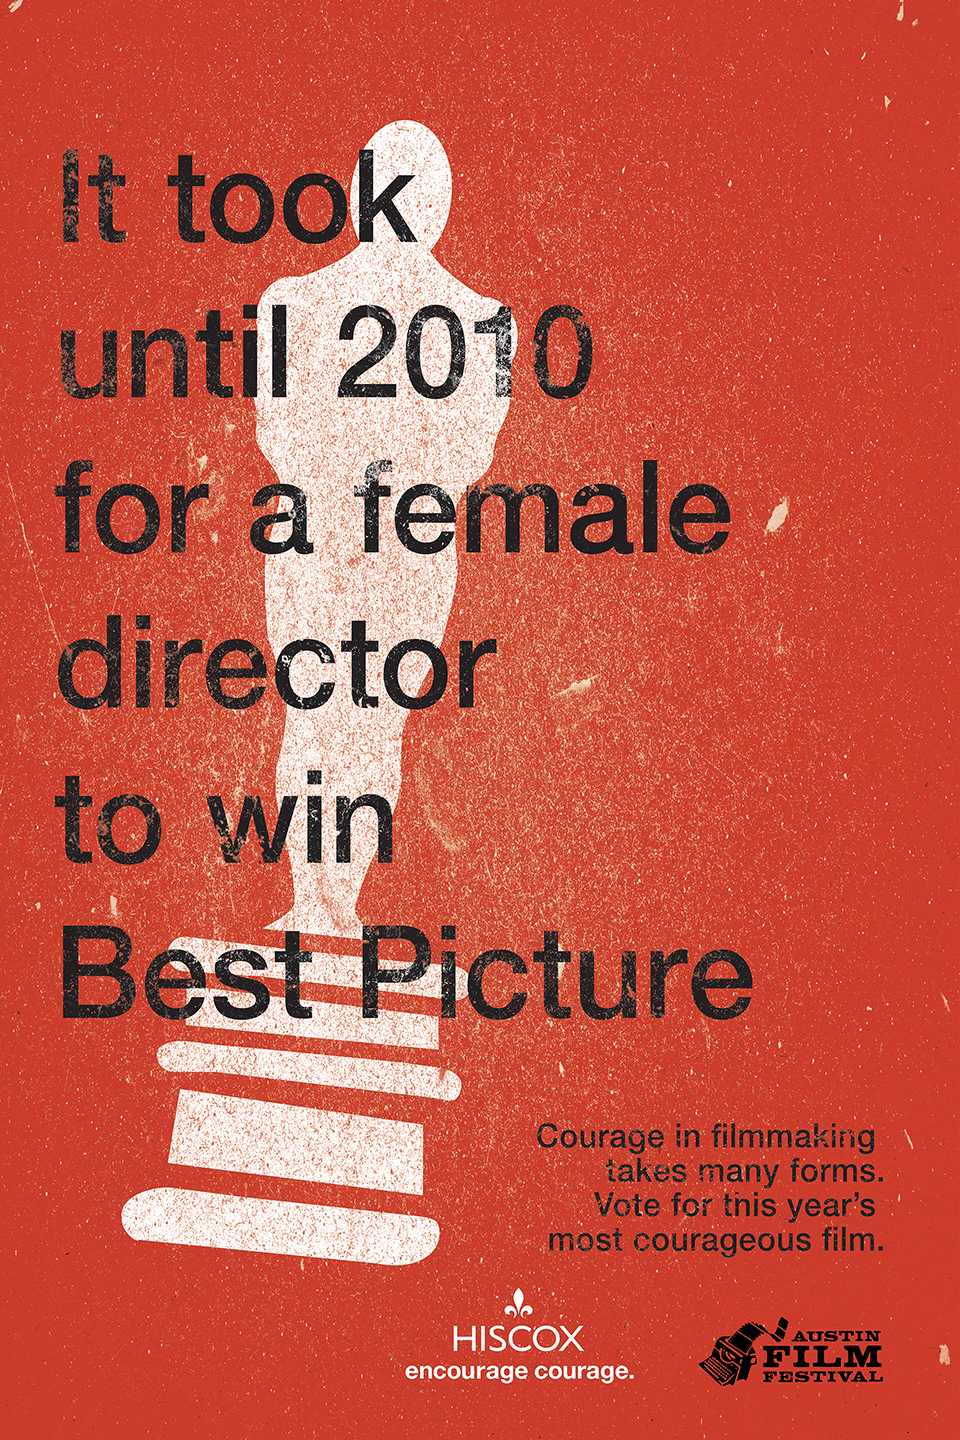 hiscox_aff-poster_courageinfilmmaking_postersv08_Female Best Picture.jpg